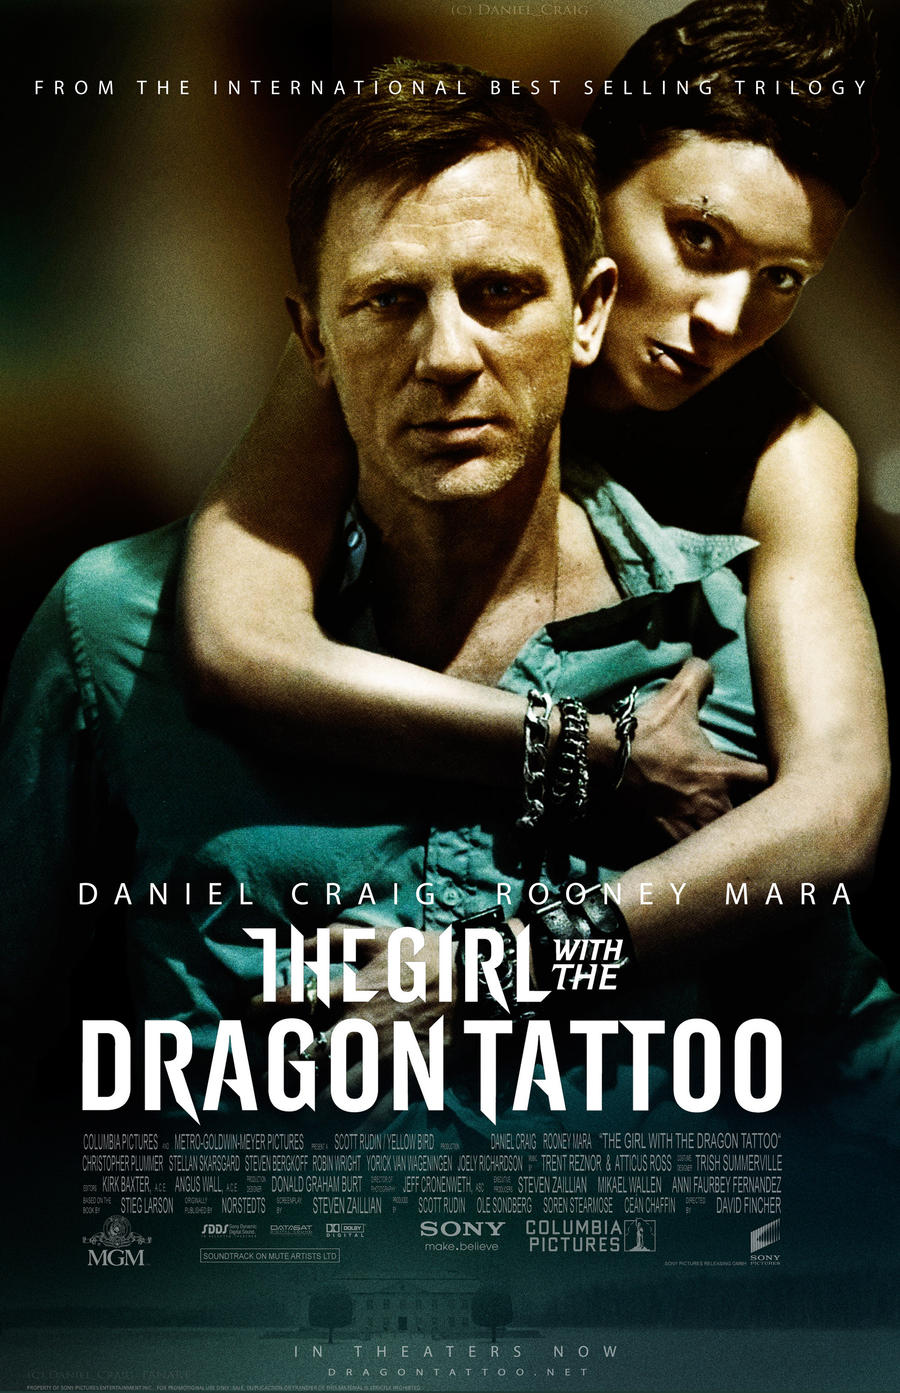 The Girl with the Dragon Tattoo Theatrical Poster by DanielCraig1 on ... The Girl With The Dragon Tattoo Poster